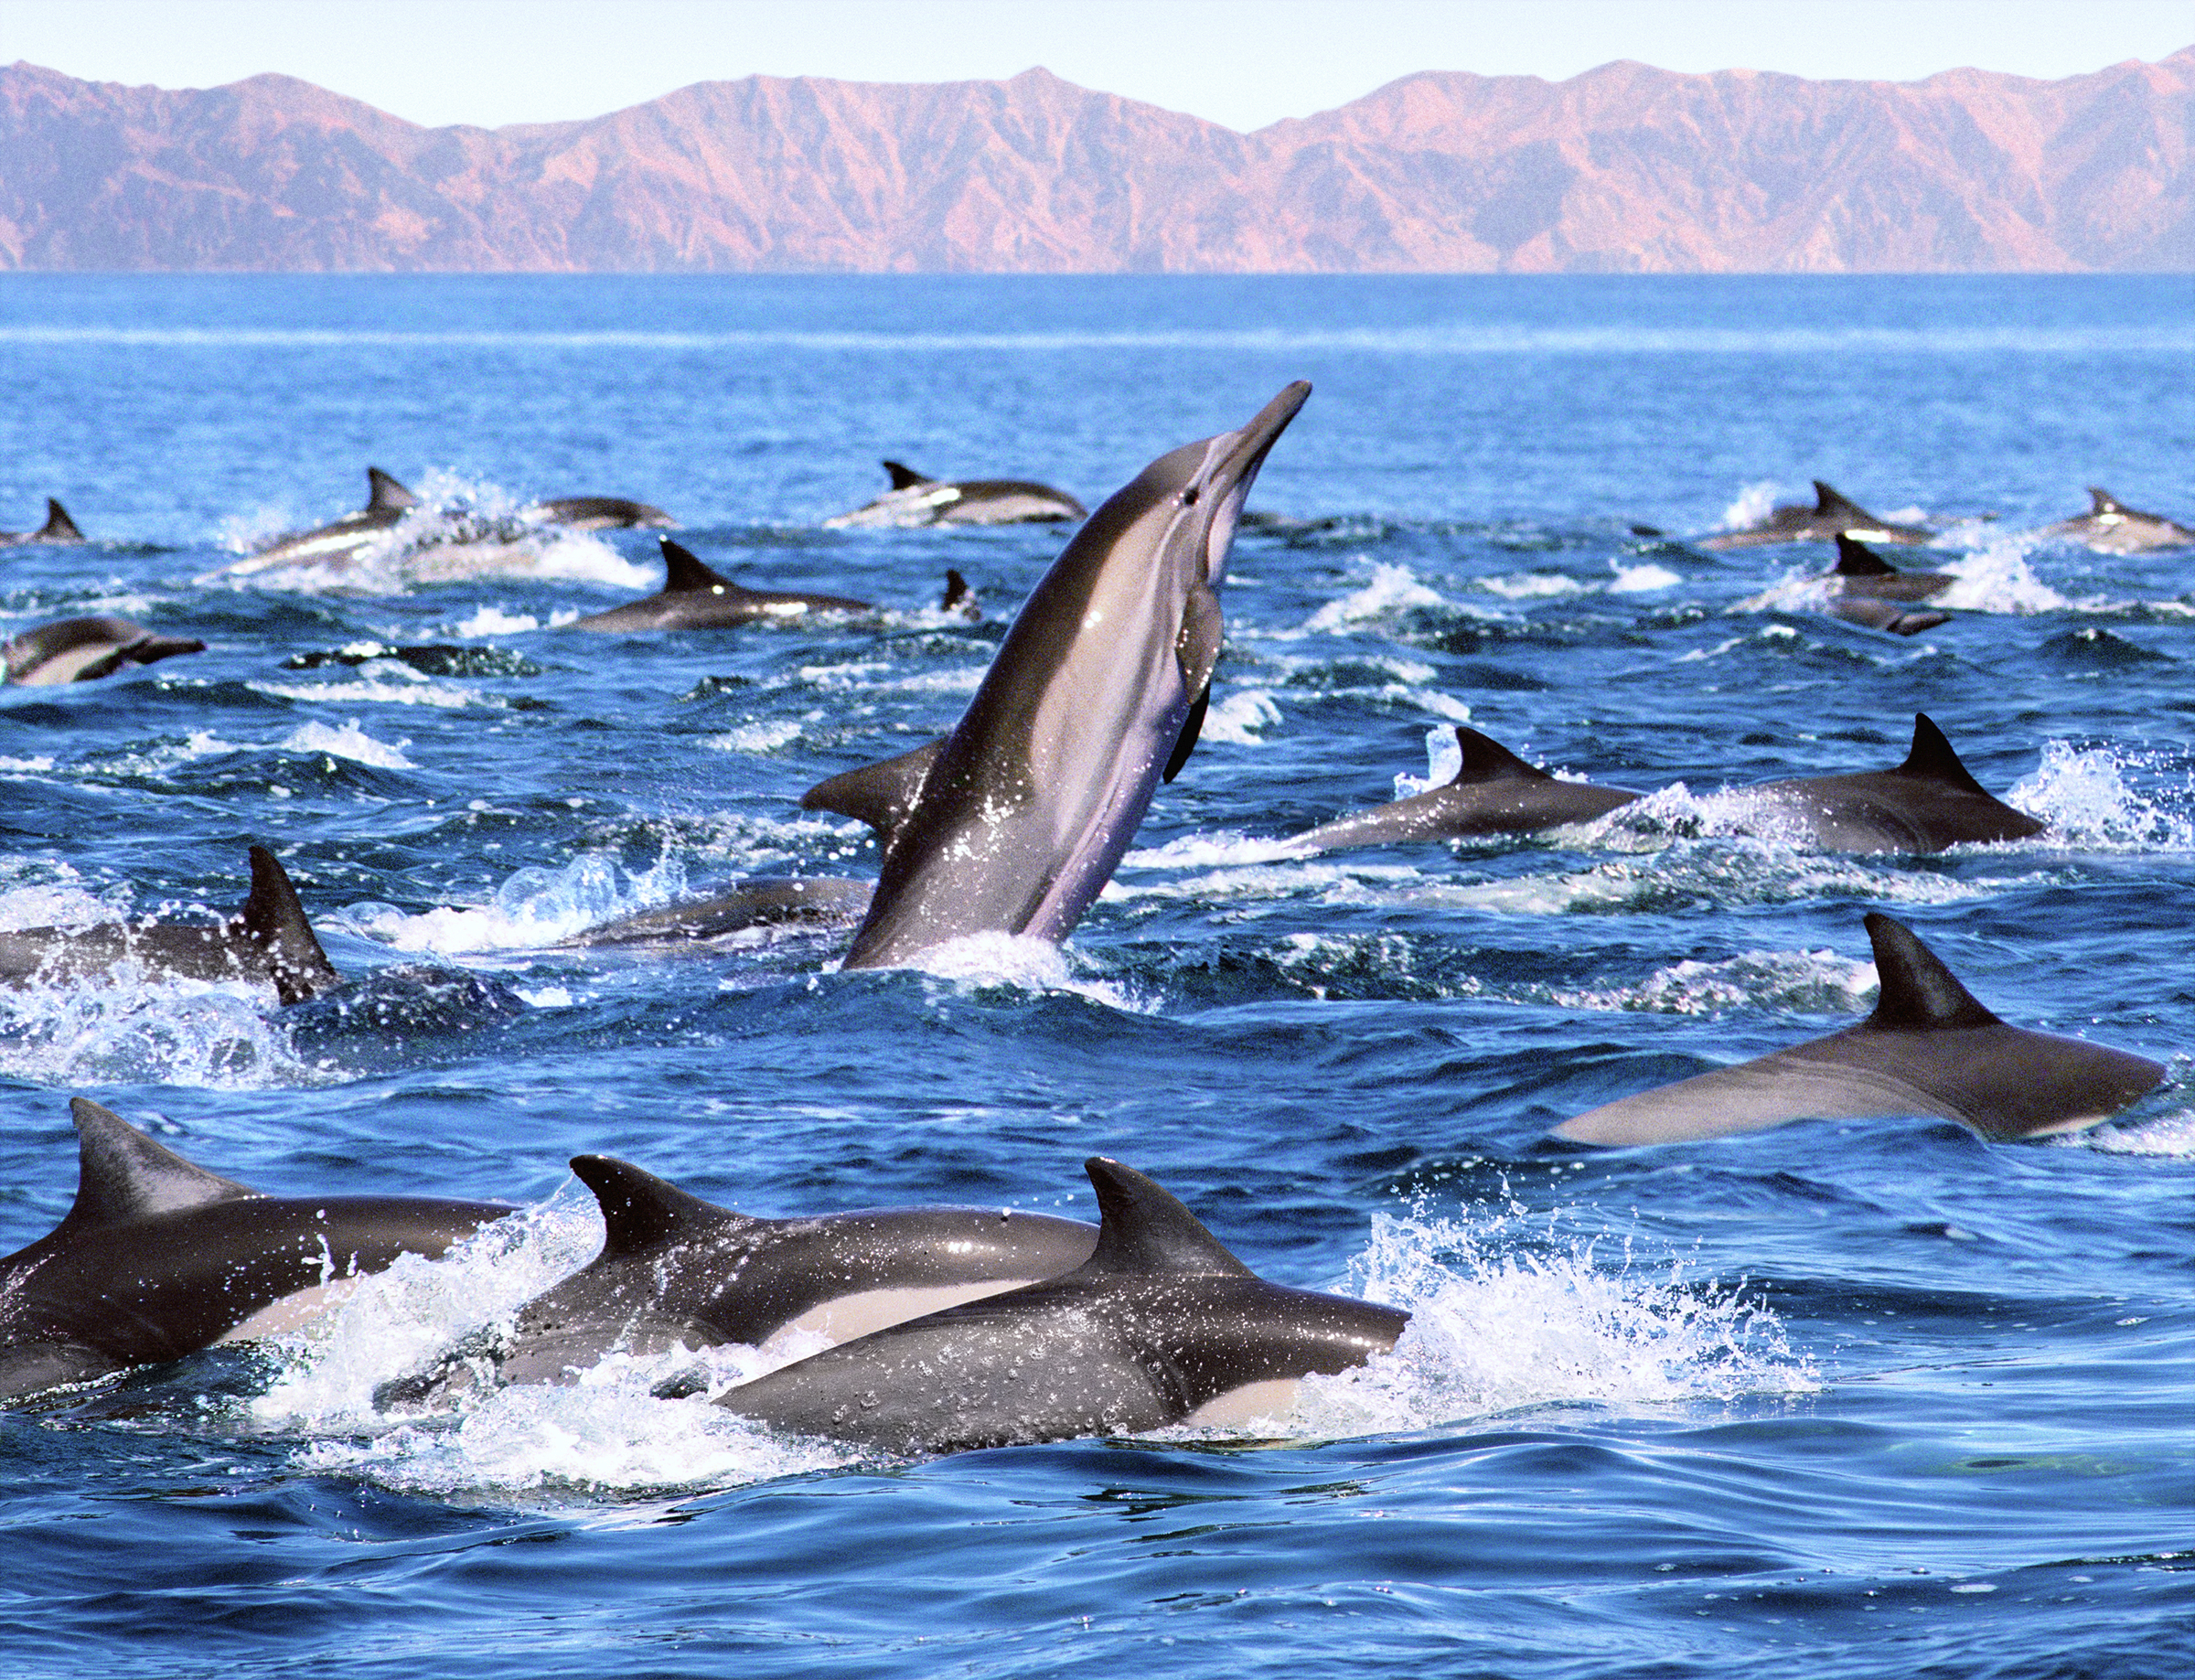 A group of common dolphins in Mexico.